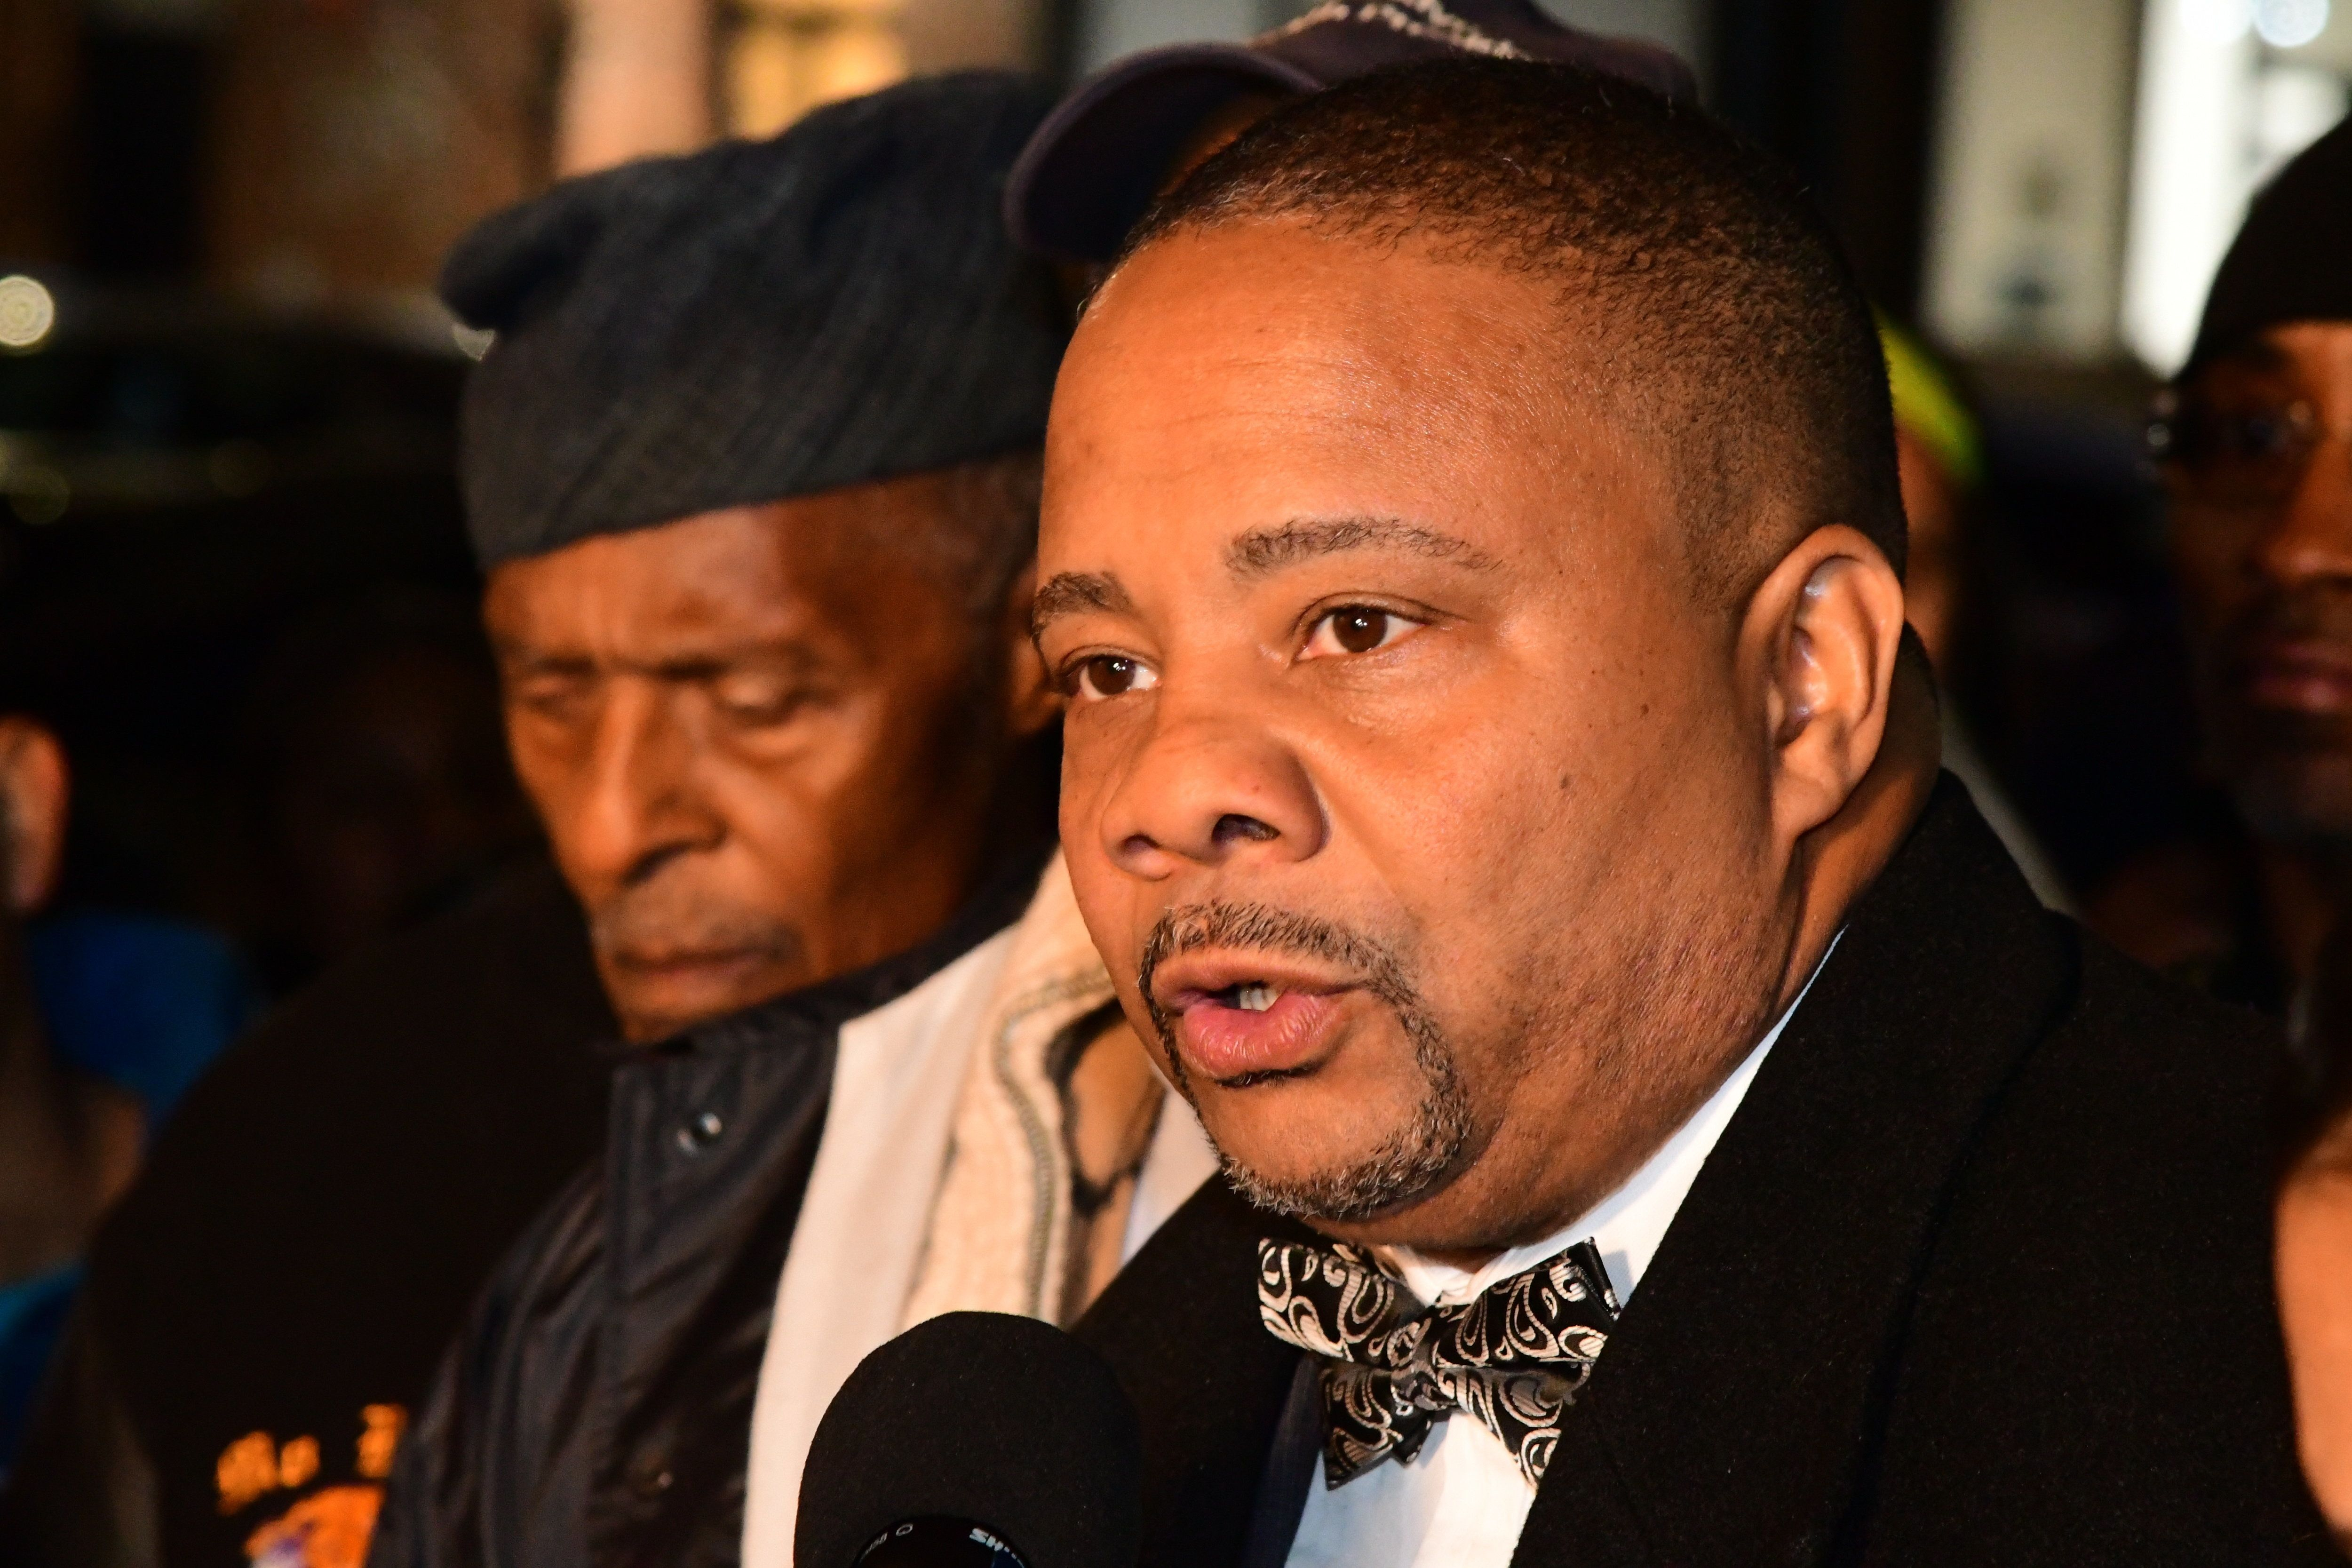 SUNSET PARK, BROOKLYN, NEW YORK, UNITED STATES - 2017/11/27: State Senator Jesse Hamilton. Brooklyn Borough President Eric Adams joined other elected officials, community leaders and safety advocates at the site where Guatemalan immigrant & delivery boy Edwin Ajacalon was struck & killed by a motorist. Ajacalon's family collected donations to return his body to Guatemala for burial after a white memorial 'ghost bike' was put into place by Transportation Alternatives. (Photo by Andy Katz/Pacific Press/LightRocket via Getty Images)